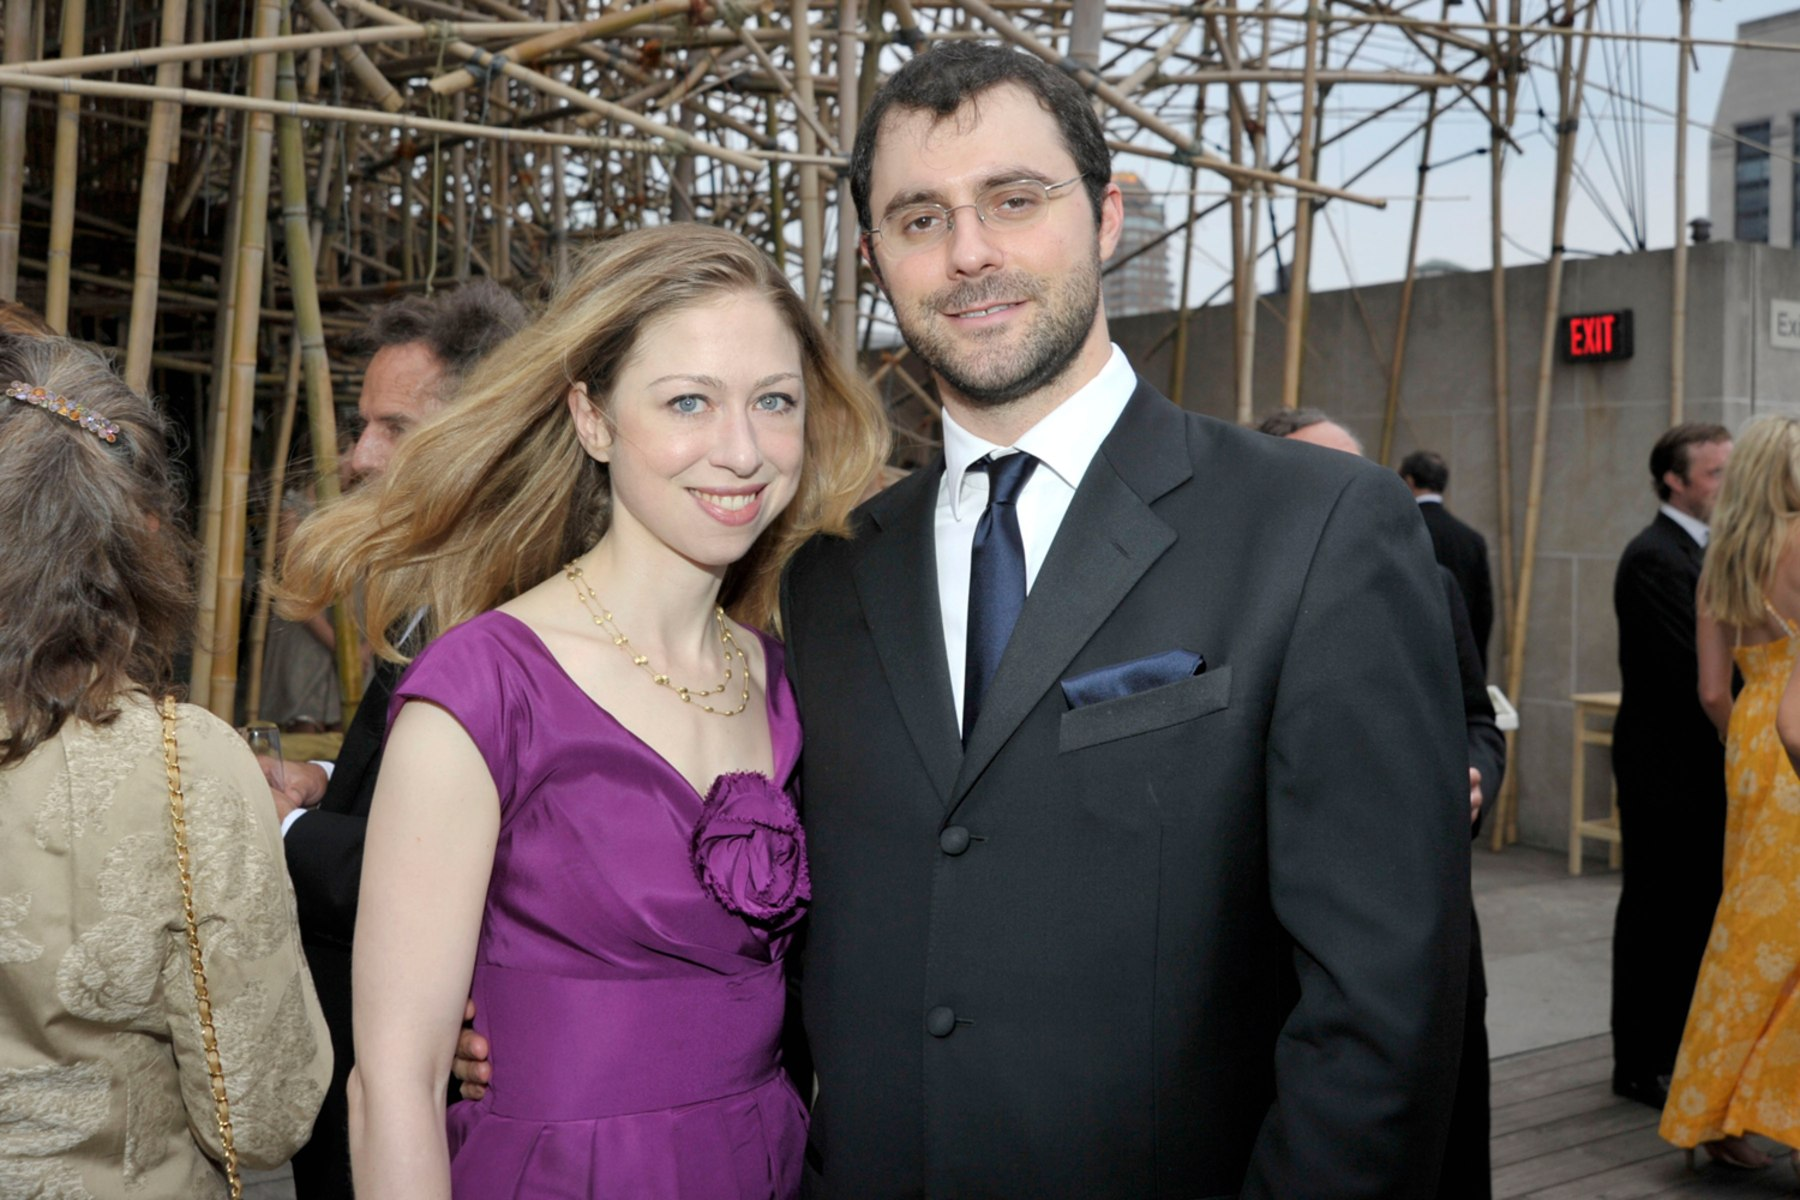 Chelsea linton weddings chelsealintonweddings com read more http - Chelsea Clinton